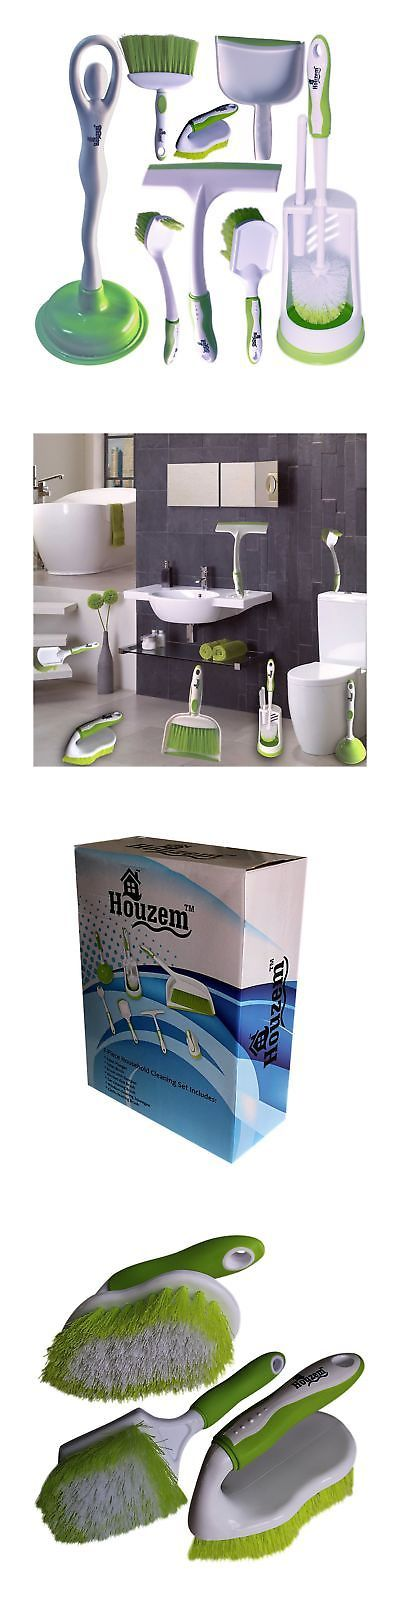 Toilet Brushes and Sets 66723: Toilet Brush Set By Houzem All-In-One Set - Scrub Brush Toilet Plunger Window... -> BUY IT NOW ONLY: $31.77 on eBay!